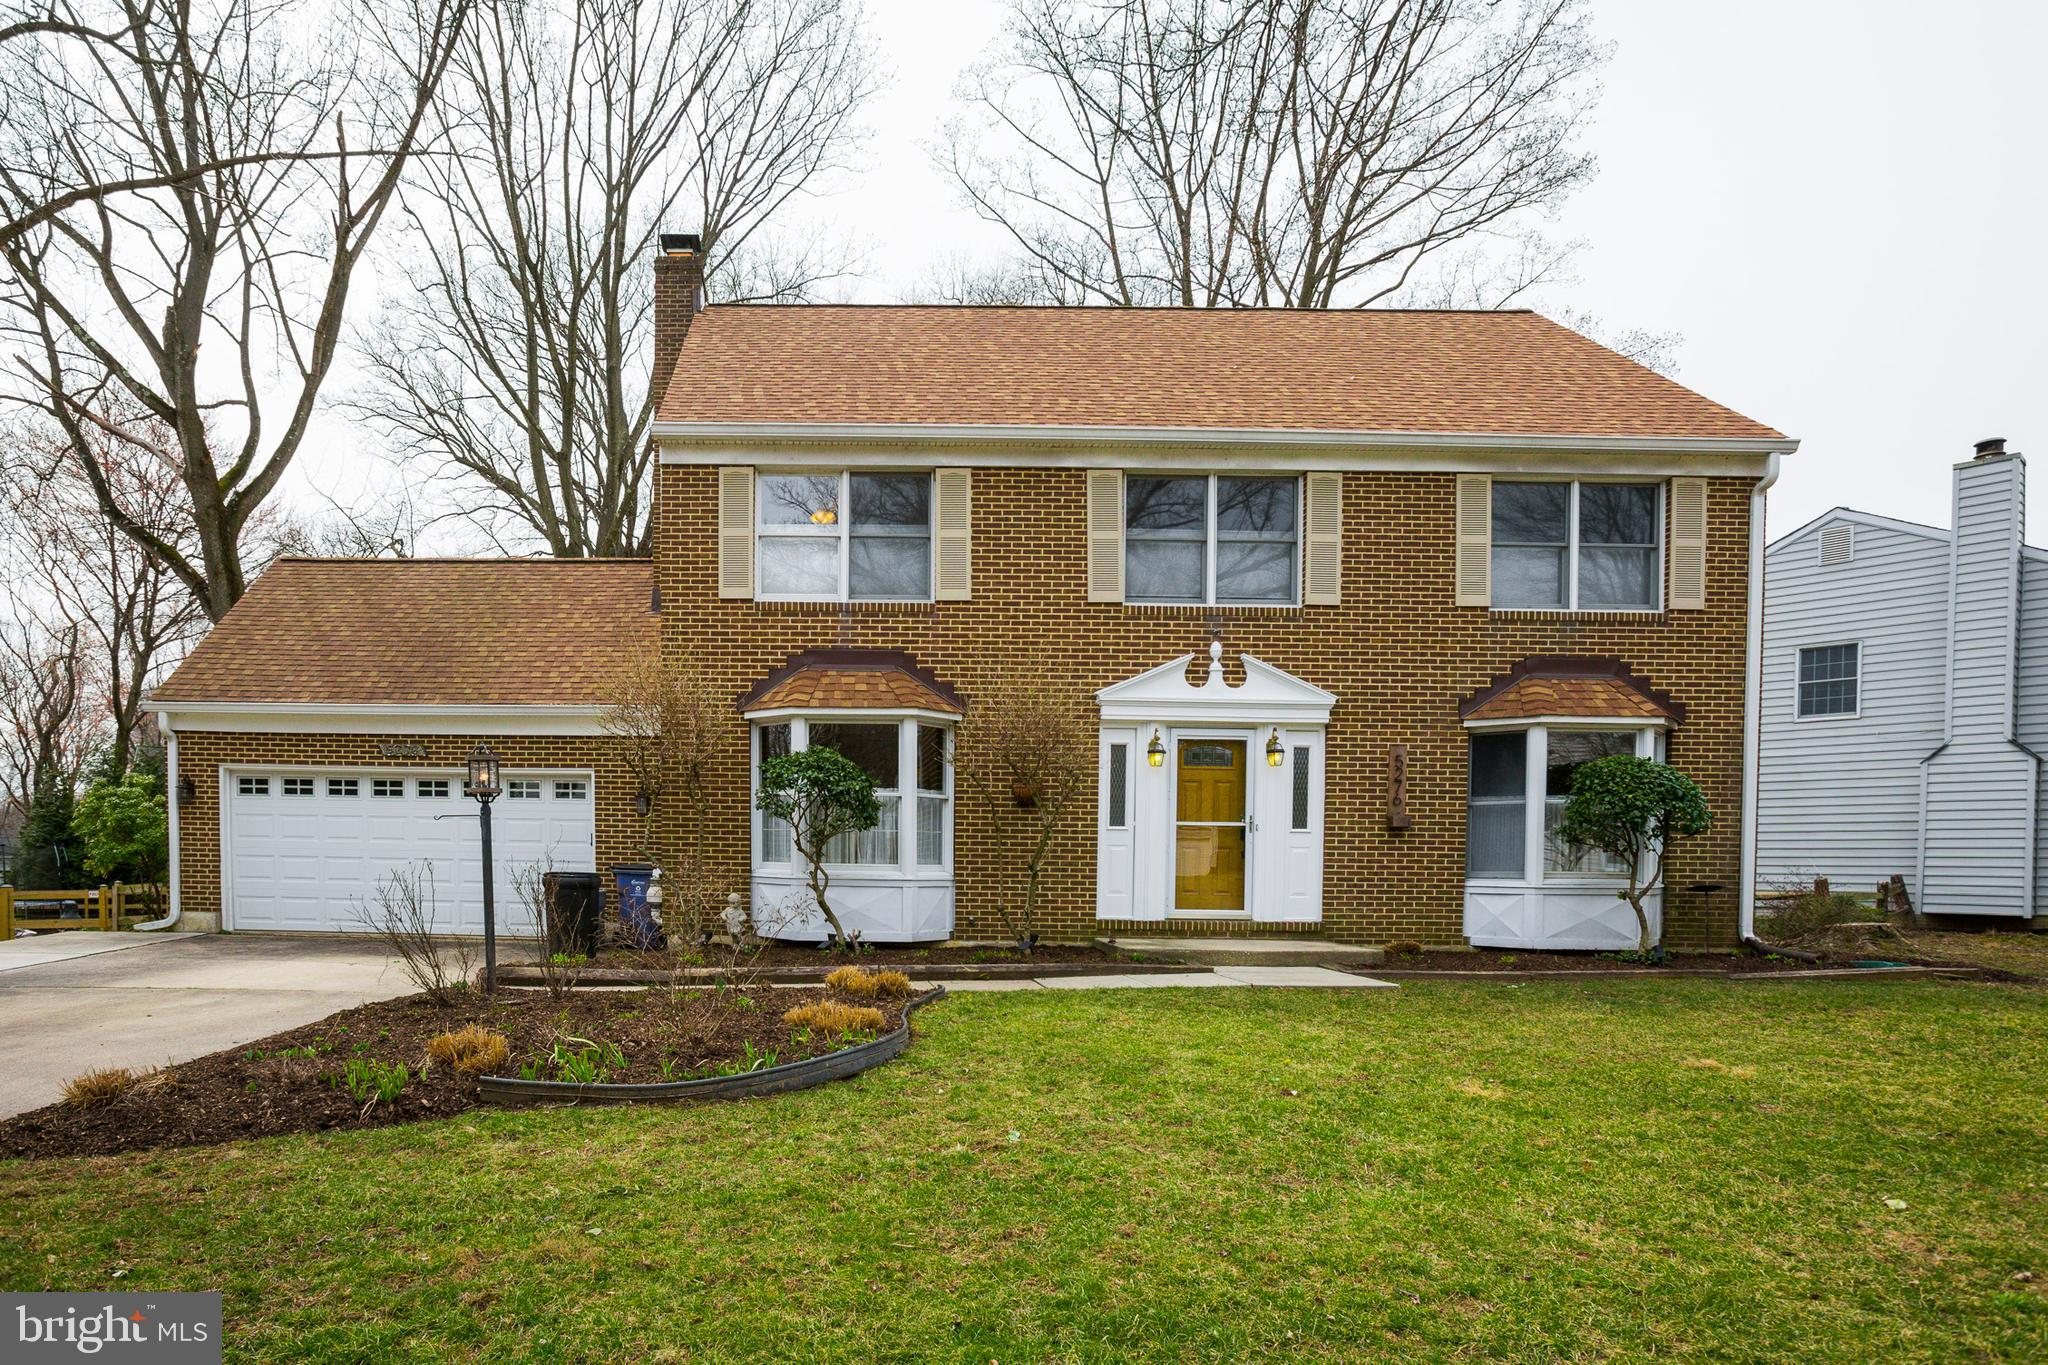 5276 5 FINGERS WAY, COLUMBIA, MD 21045